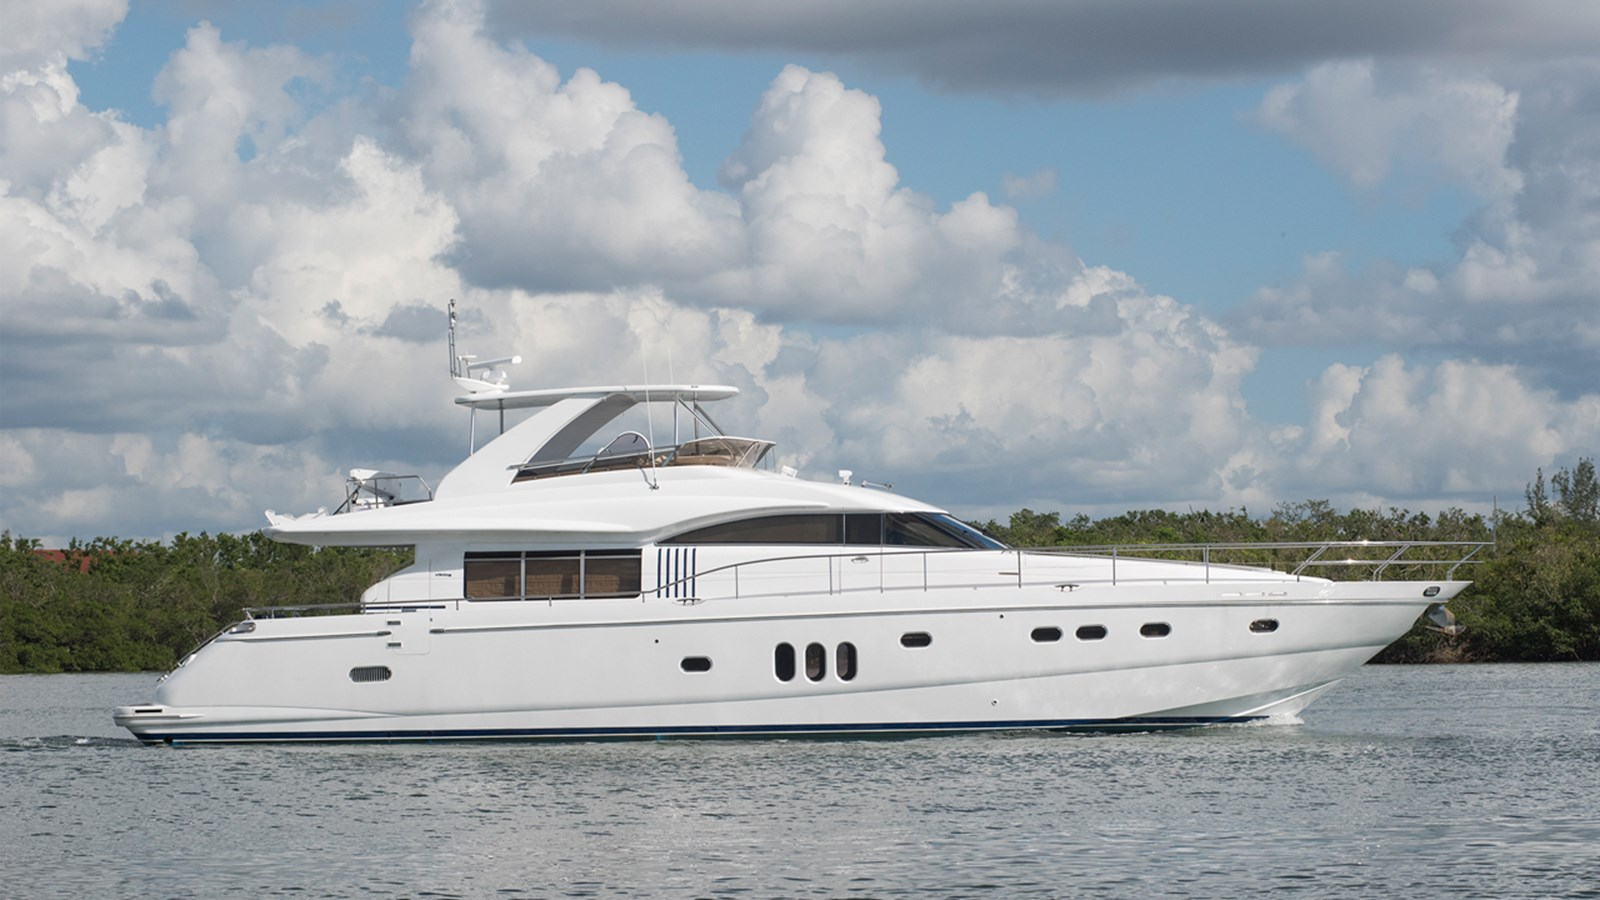 2006 PRINCESS VIKING 75 Motor Yacht For Sale